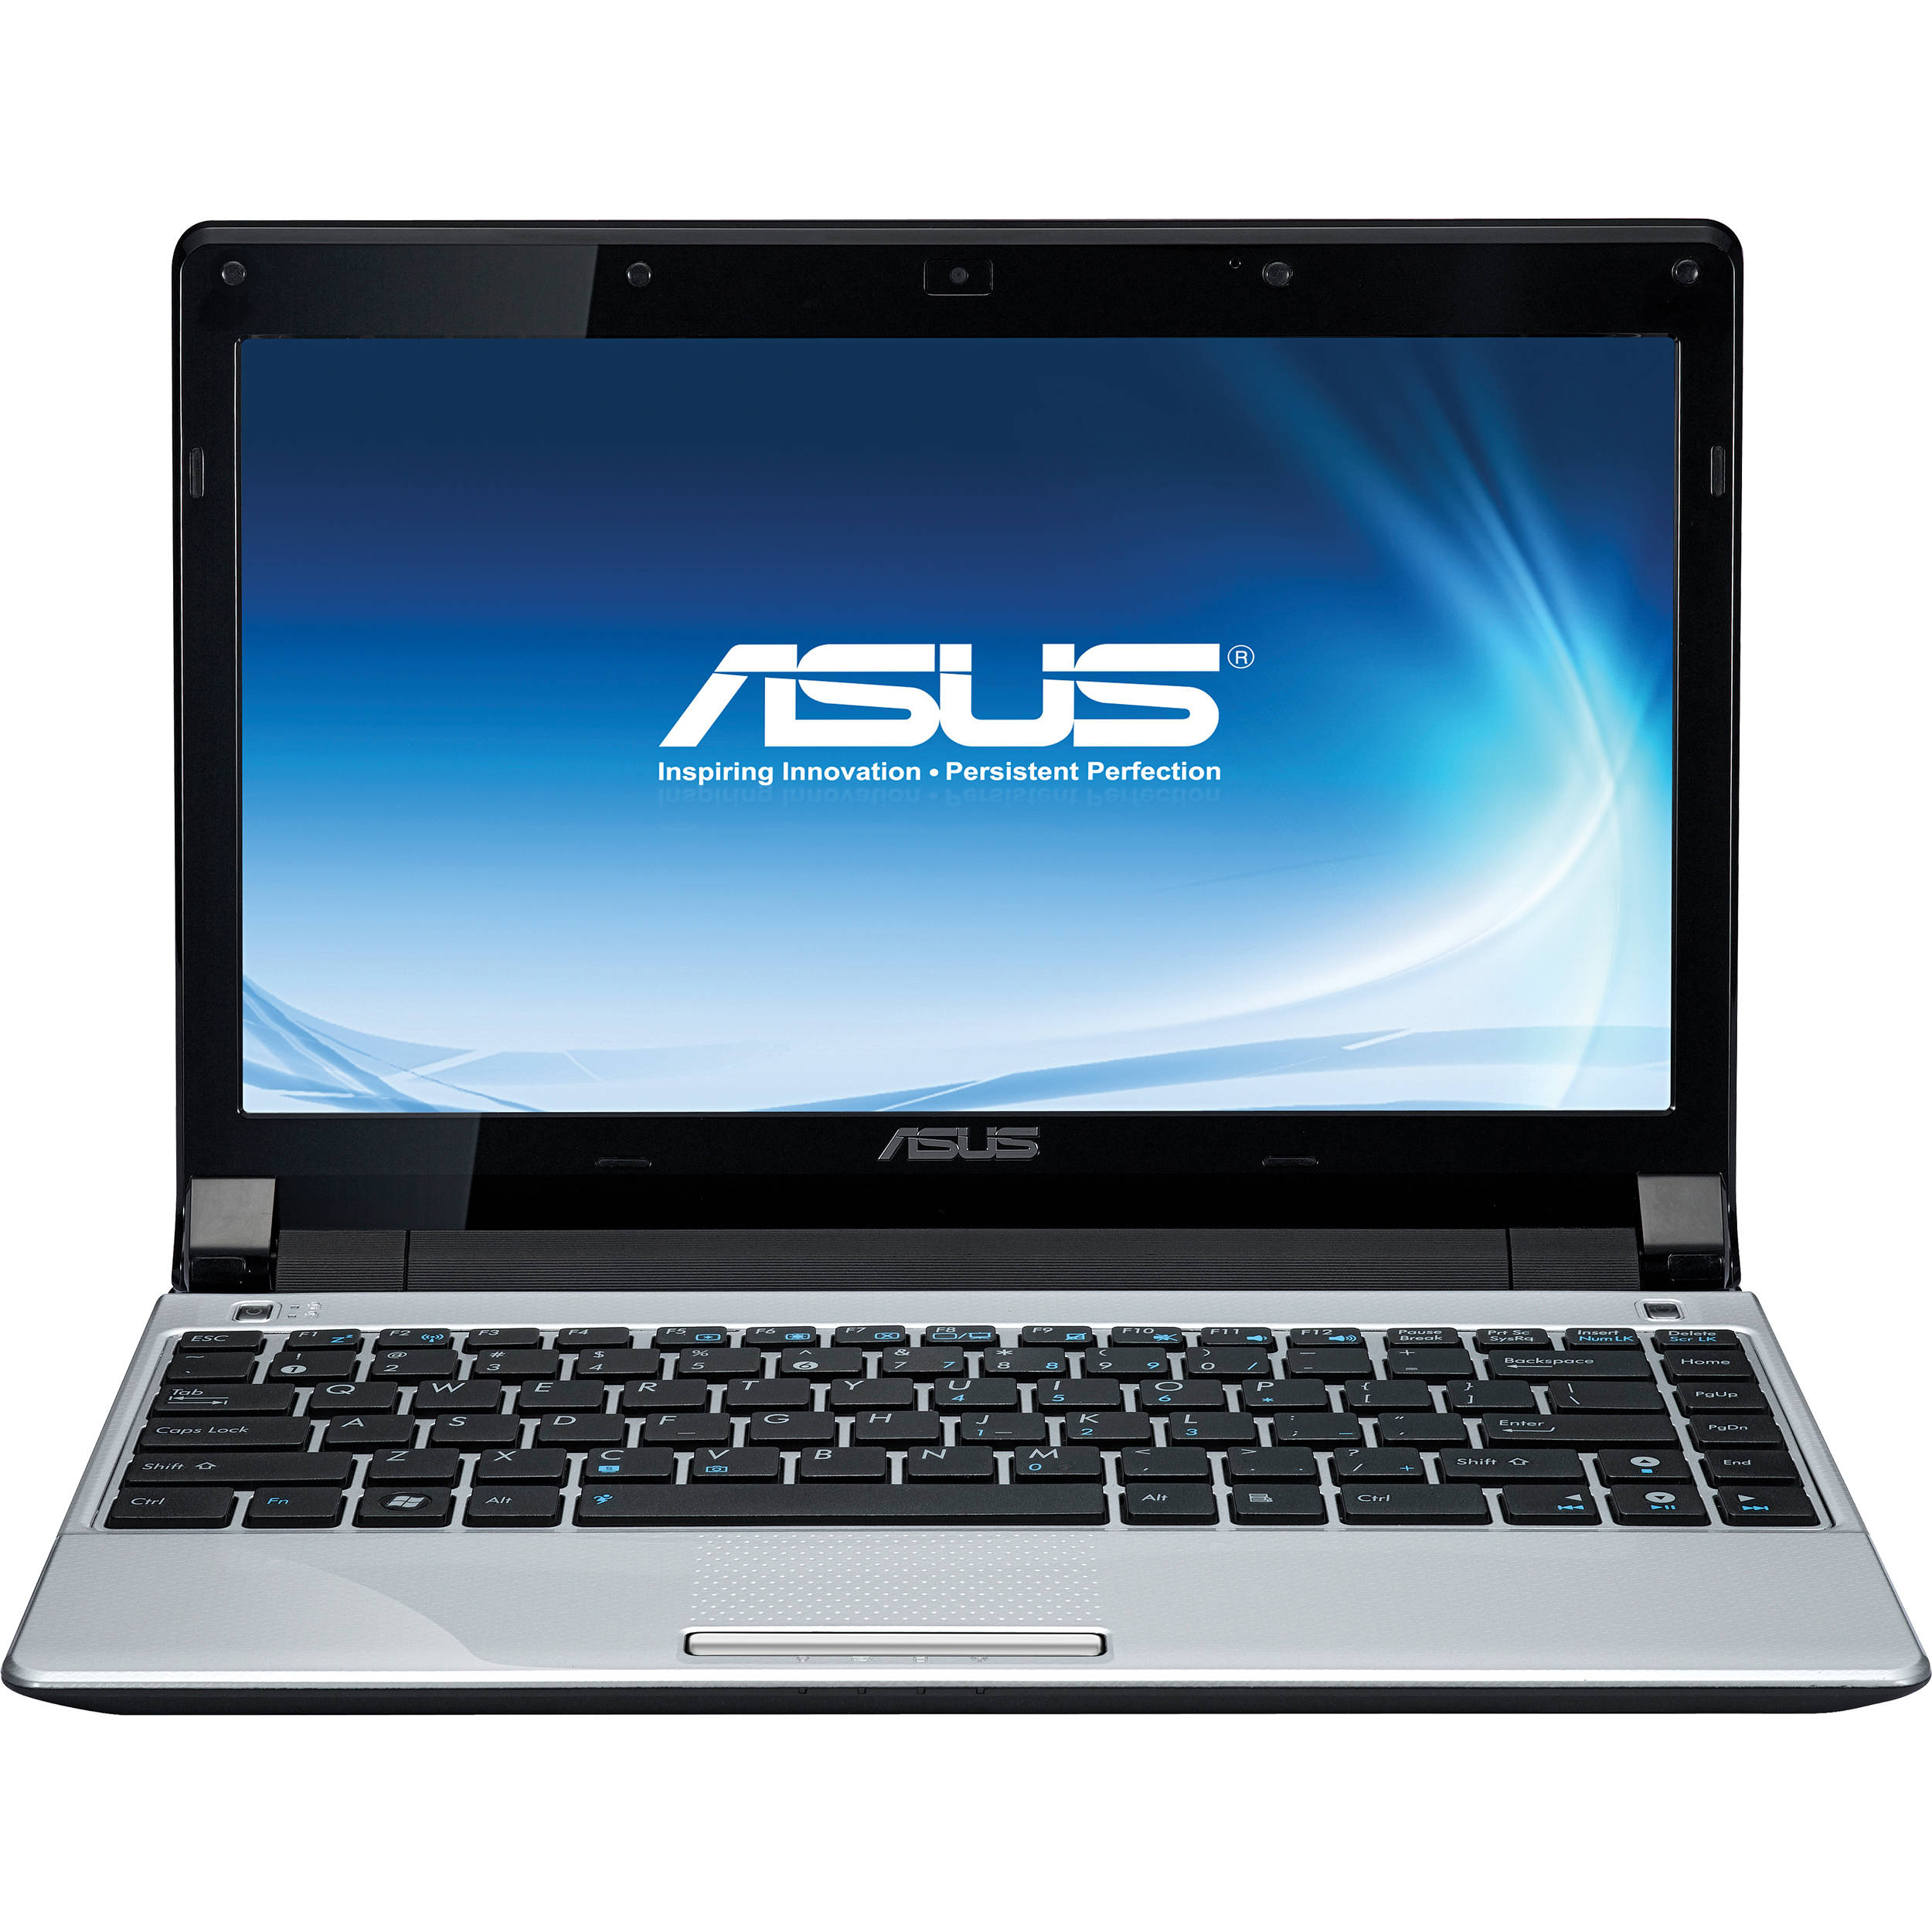 Asus UL20A Notebook Touchpad Drivers for Windows 7